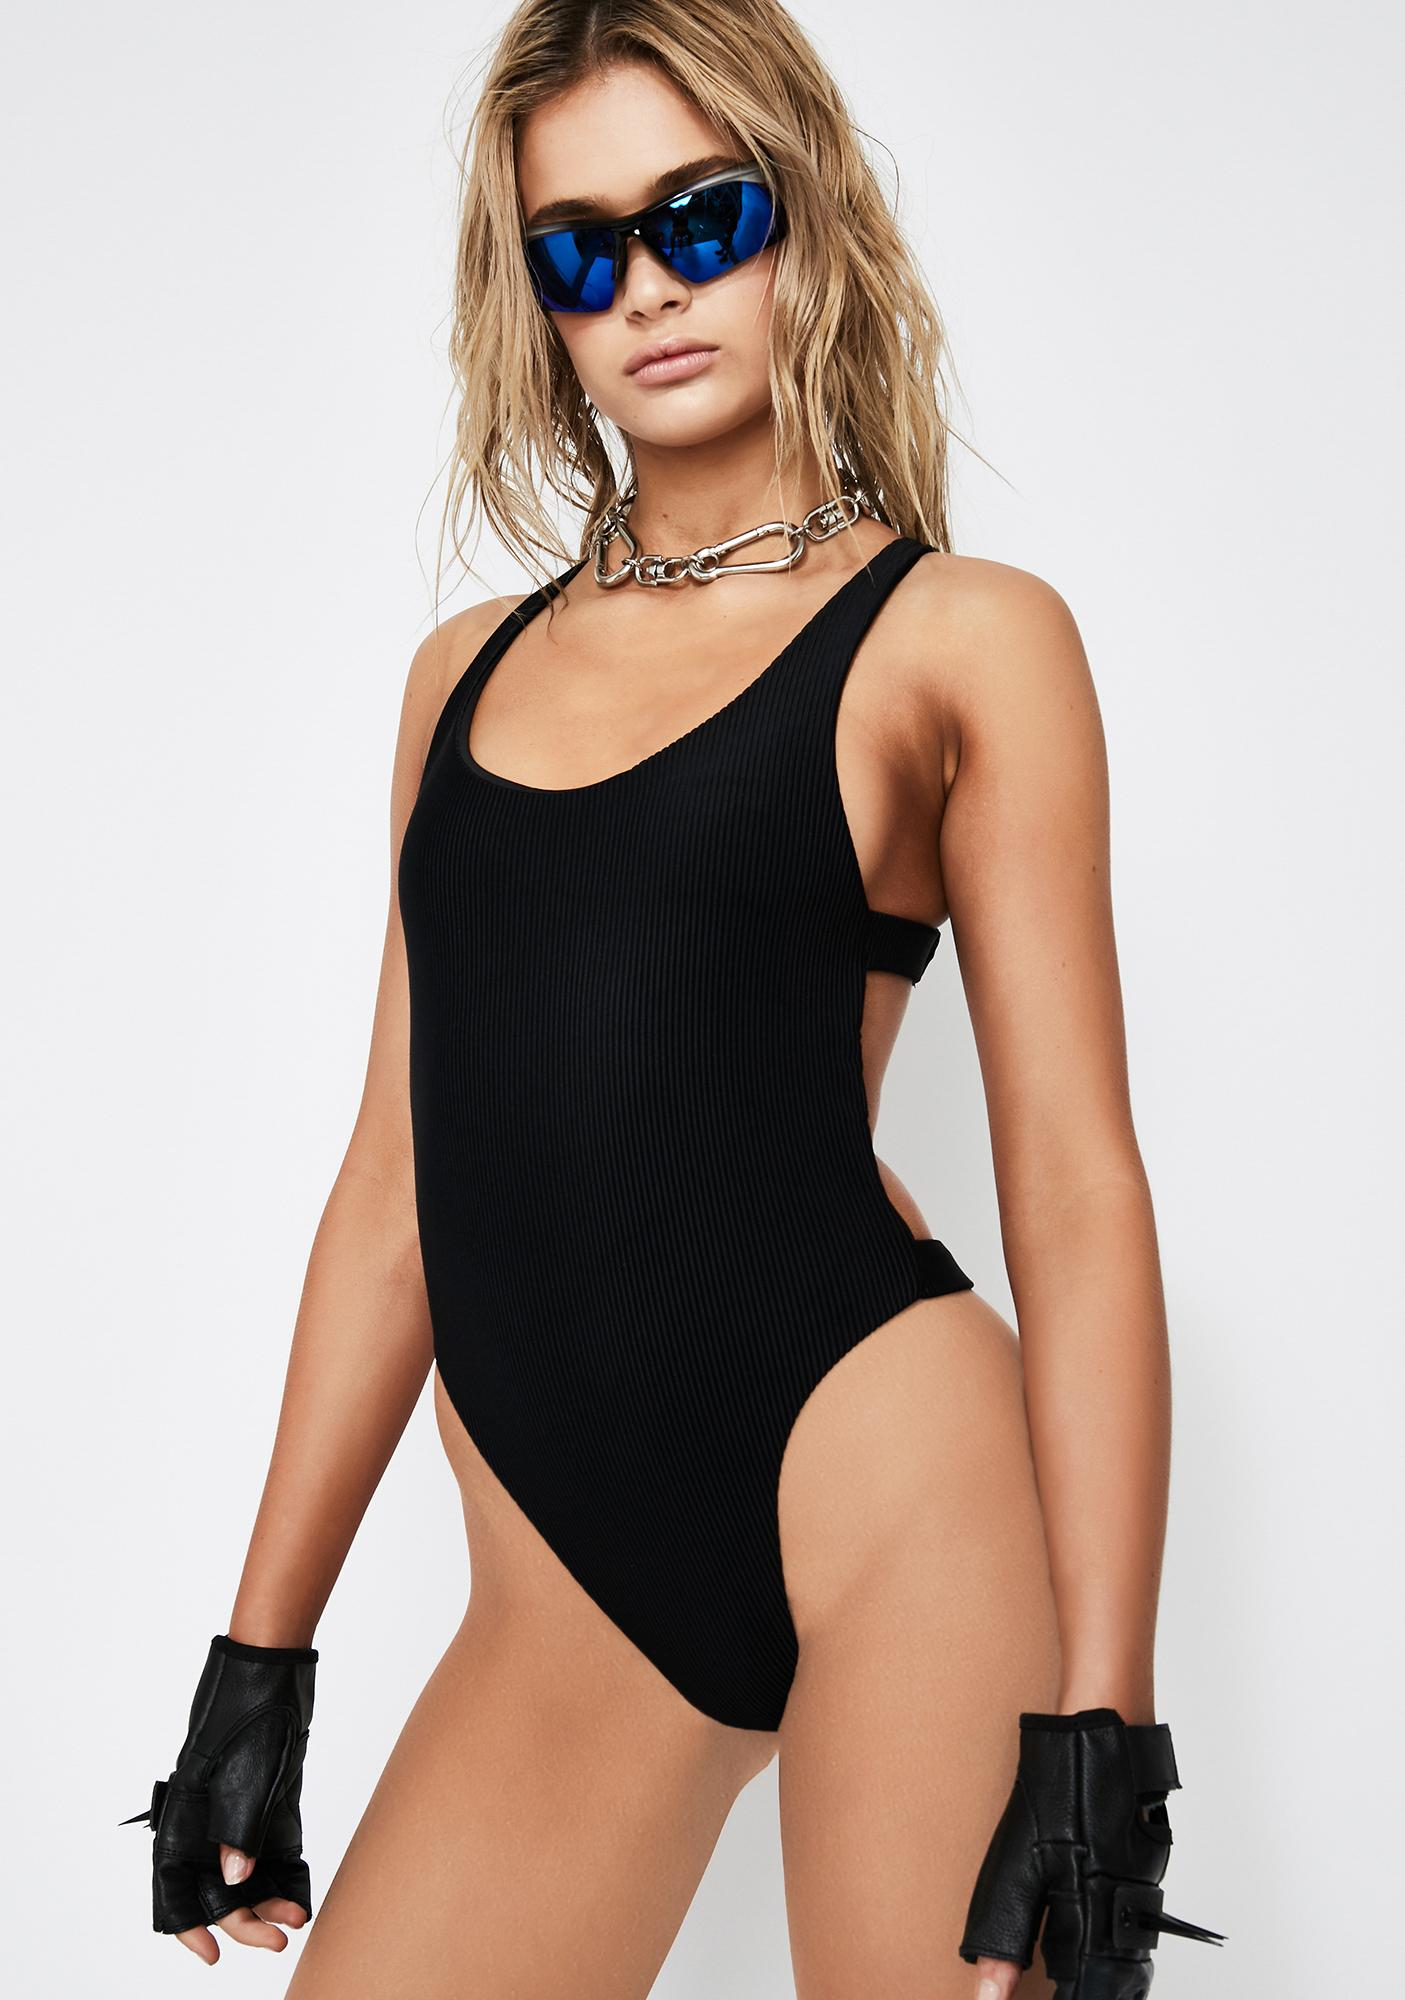 Frankies Bikinis Viv One Piece Swimsuit